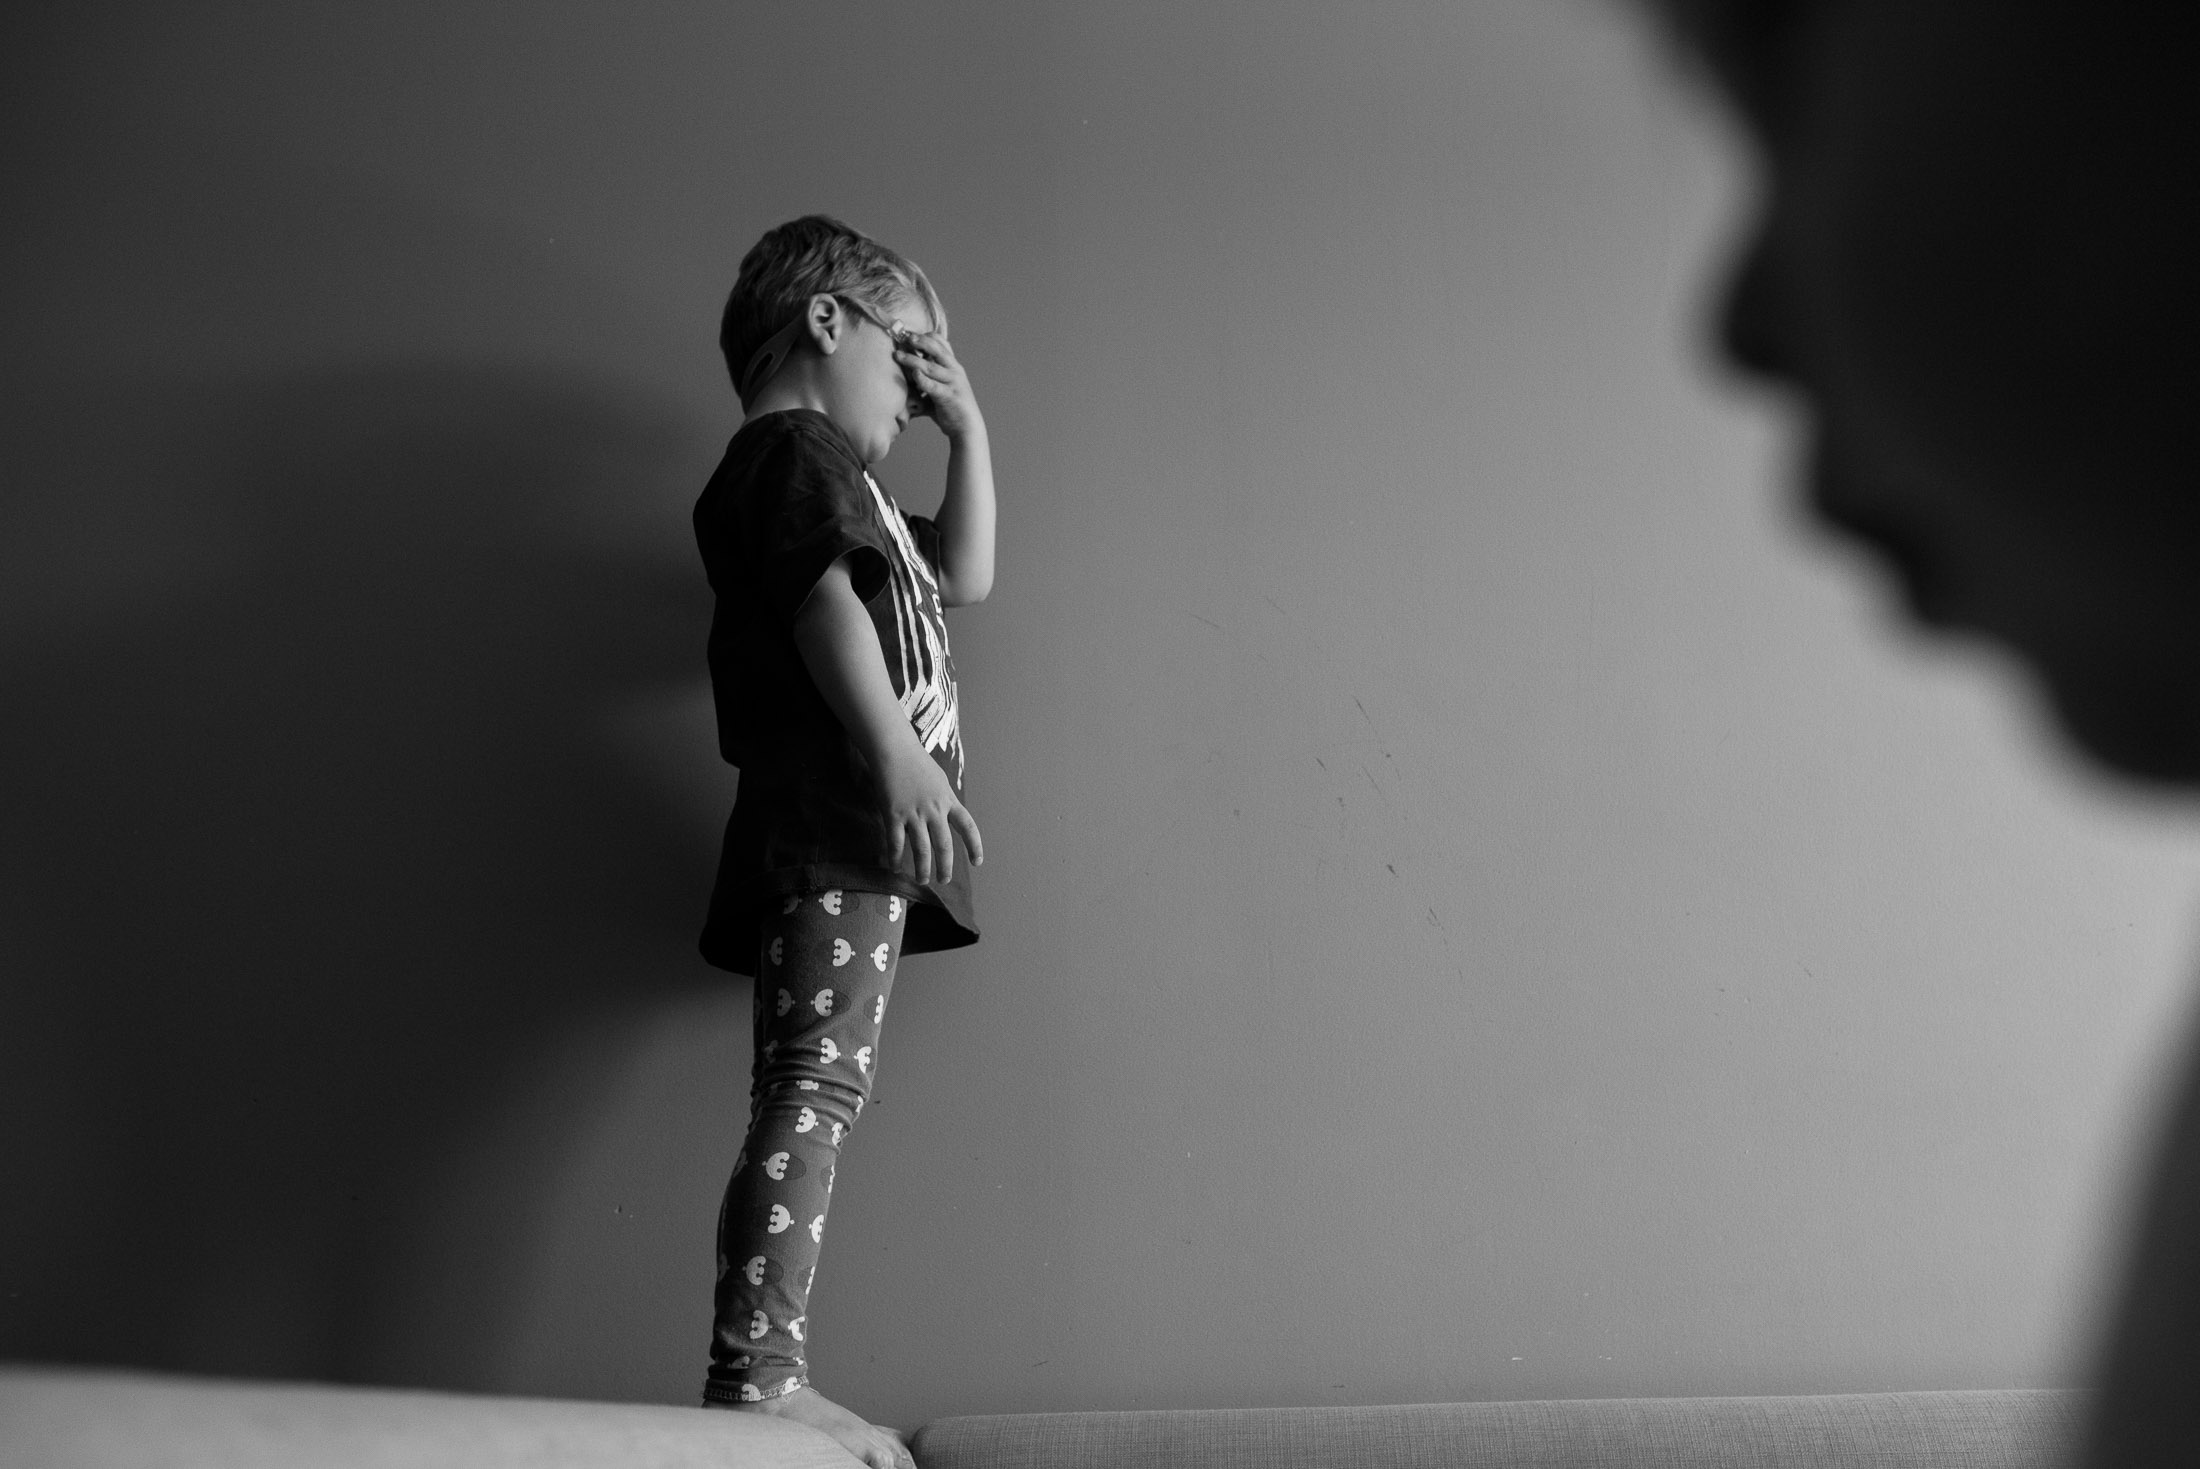 A boy is about to dive onto the couch while his brother walks into the frame. Image credit Kristine Nyborg / www.wildblueberryphotography.com